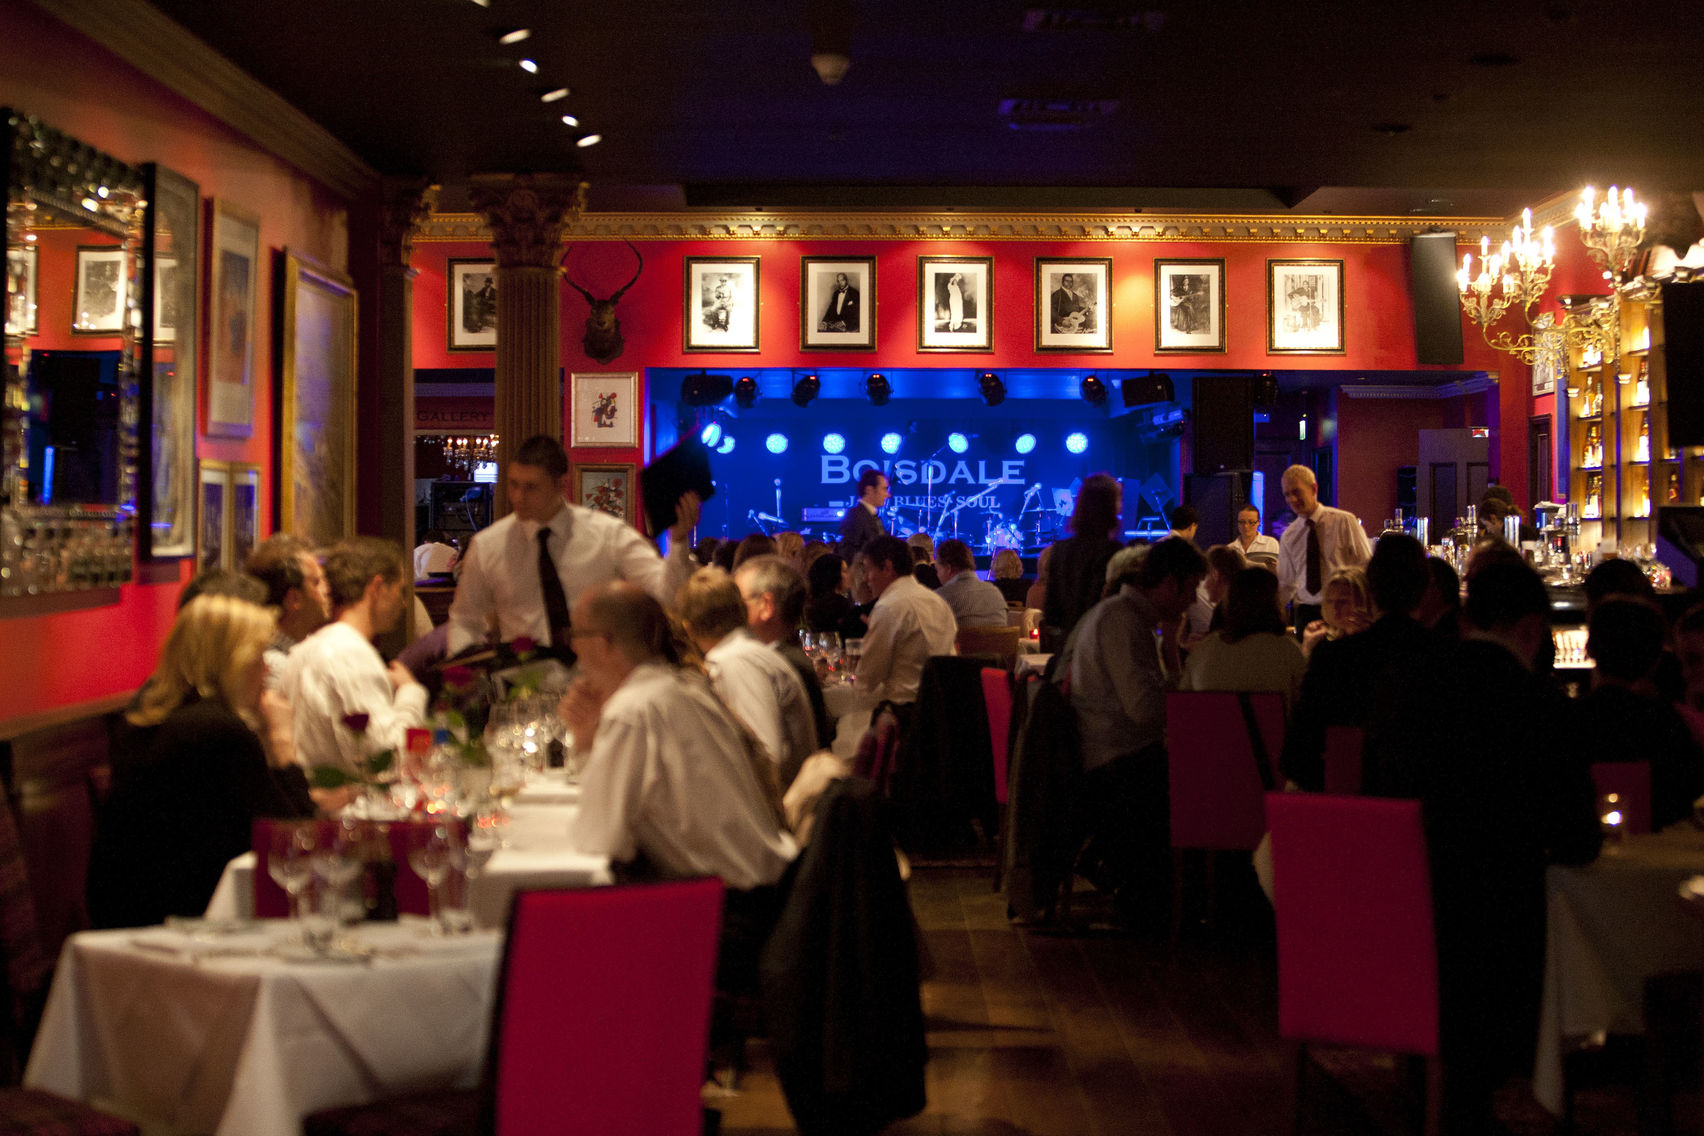 Restaurant & Jazz Club, Boisdale of Canary Wharf